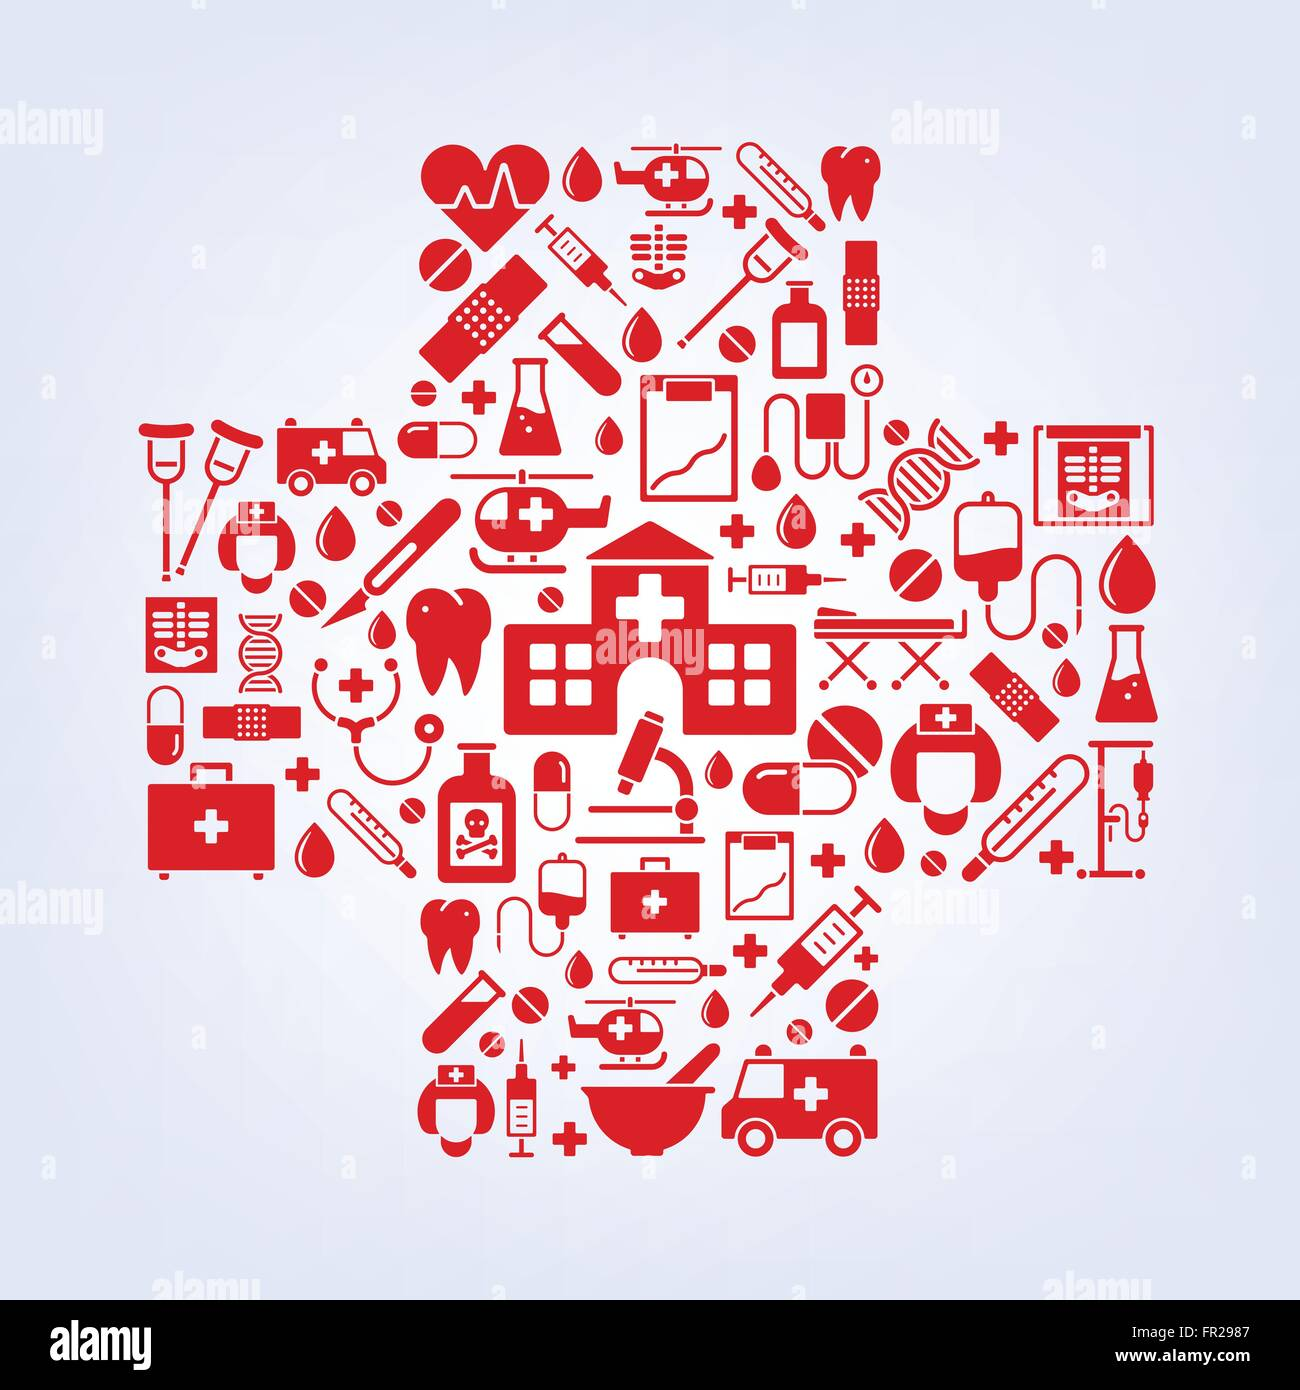 variety of medical and health care symbols arranged in cross shape - Stock Vector